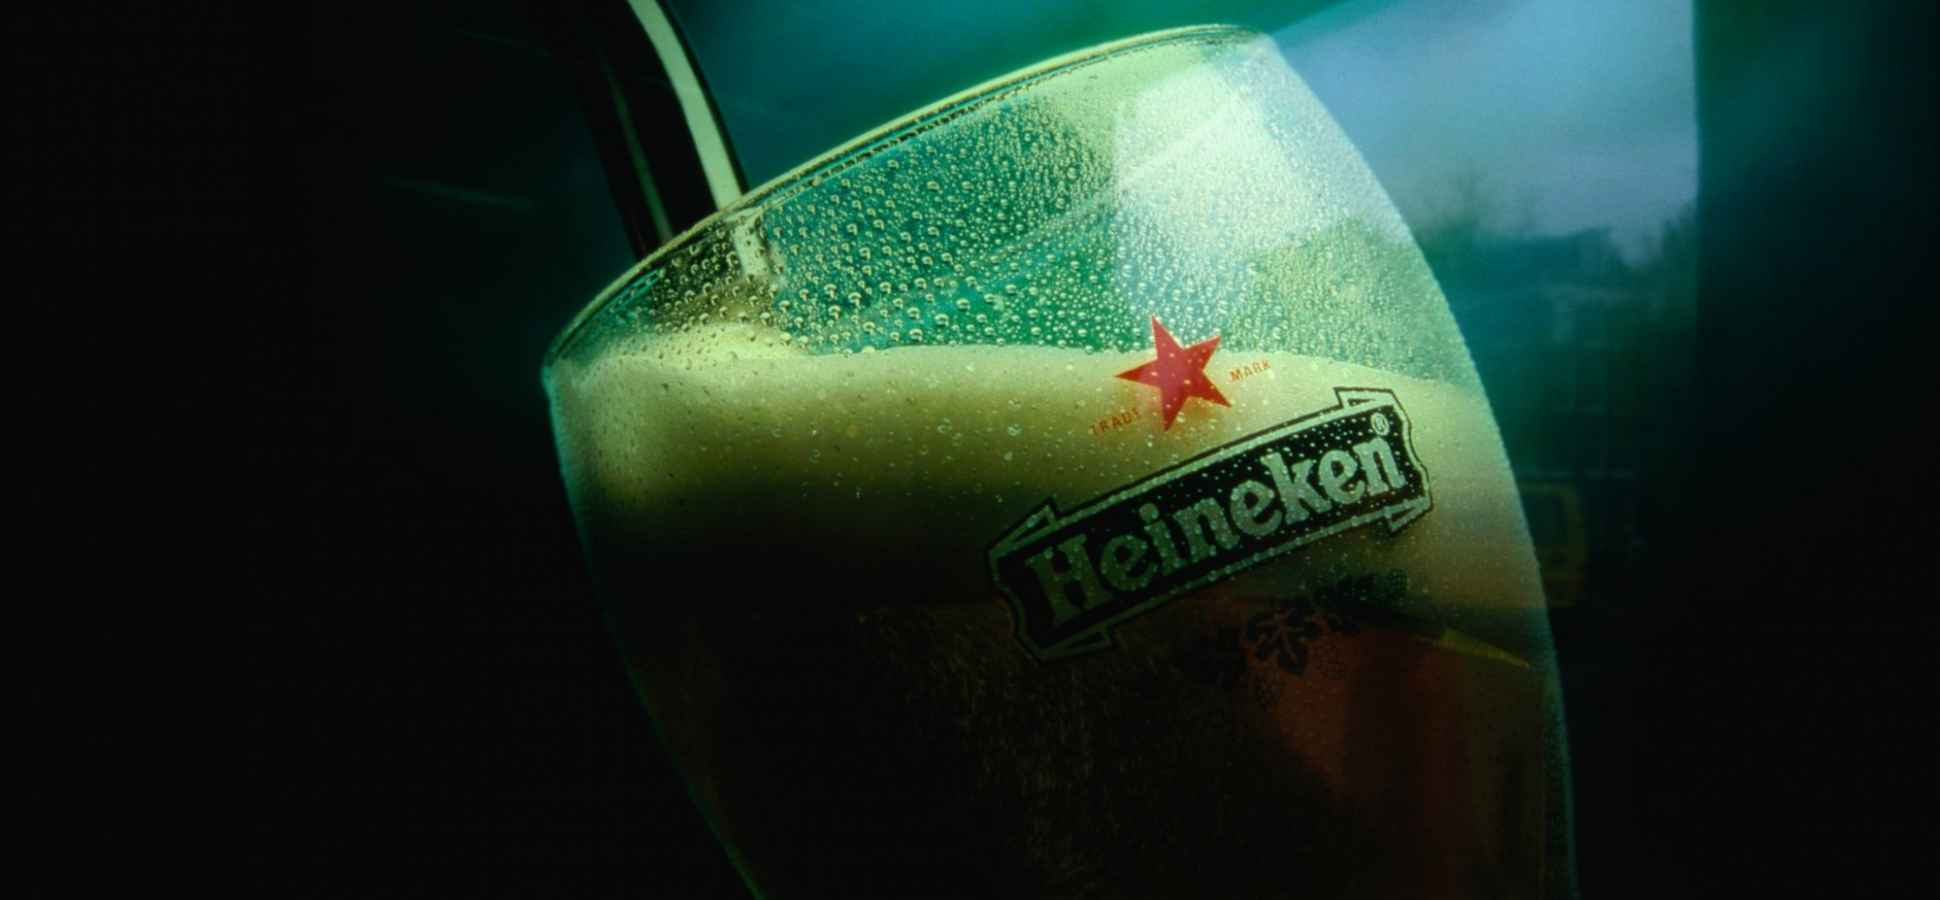 How Heineken Delivers Bold Marketing in the Age of Promiscuity